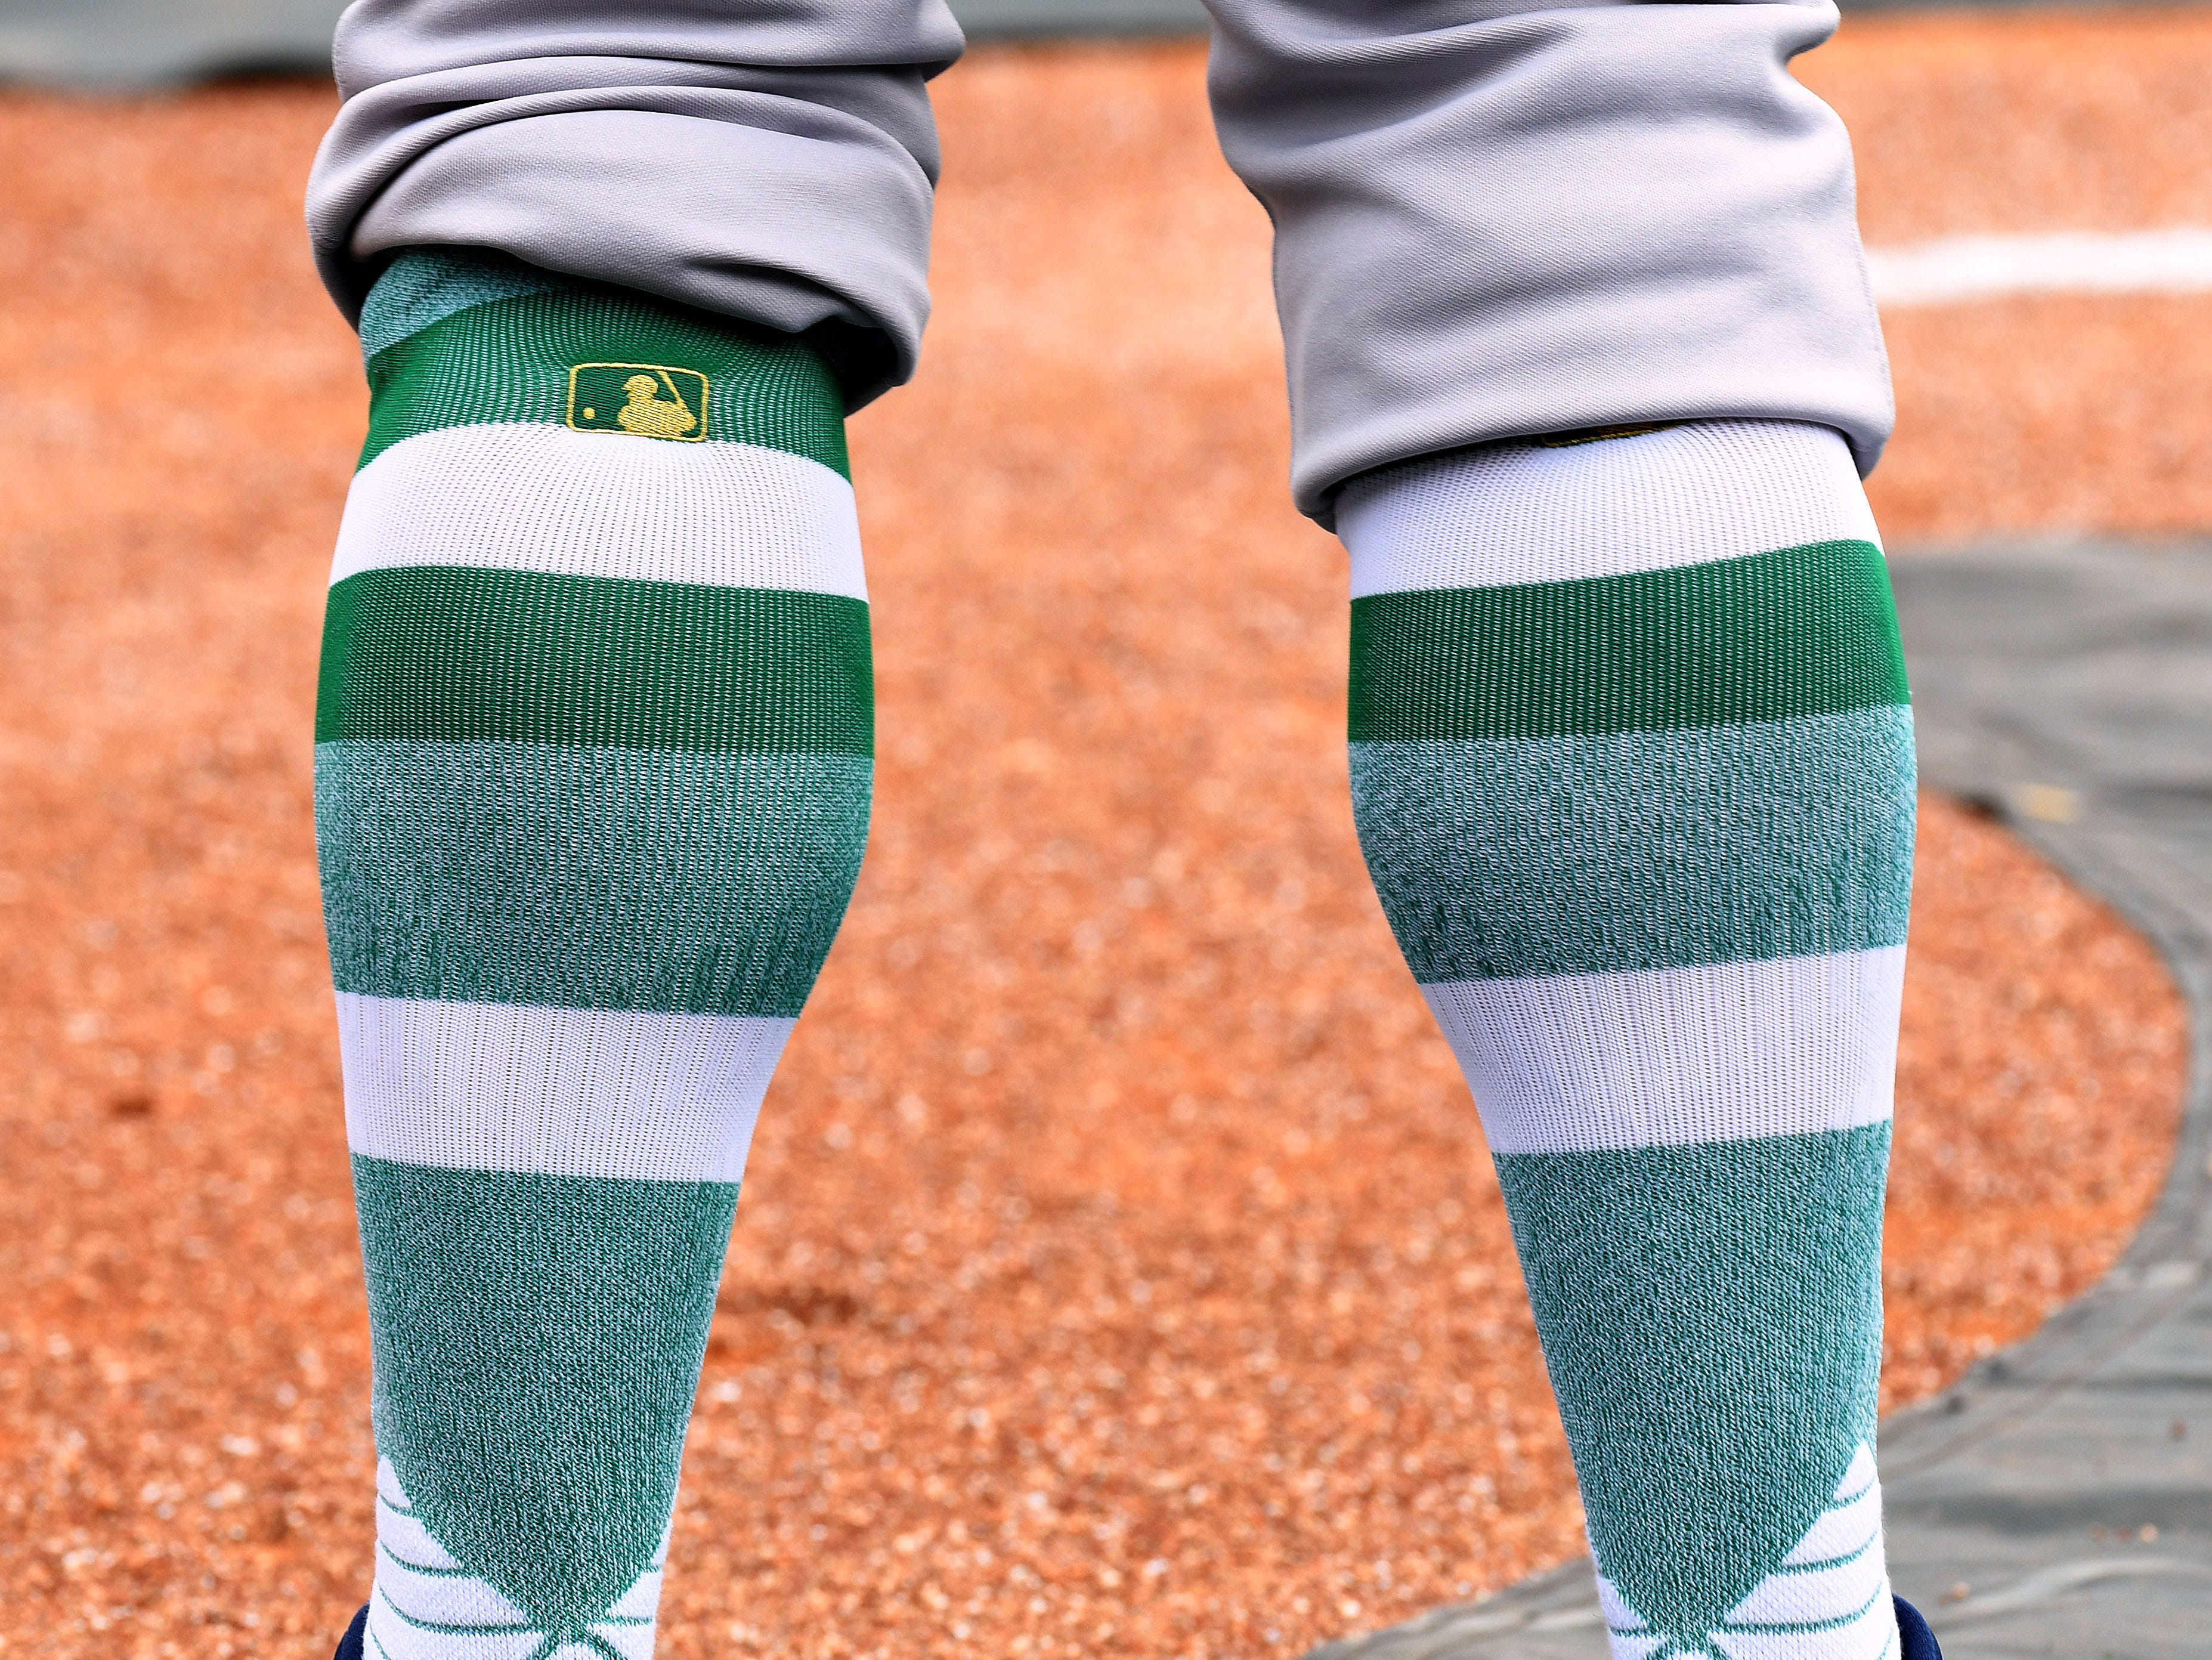 New York Yankees outfielder Matt Lipka wears St. Patrick's Day socks before the start of the spring training game against the Philadelphia Phillies at Spectrum Field in Clearwater, Fla.